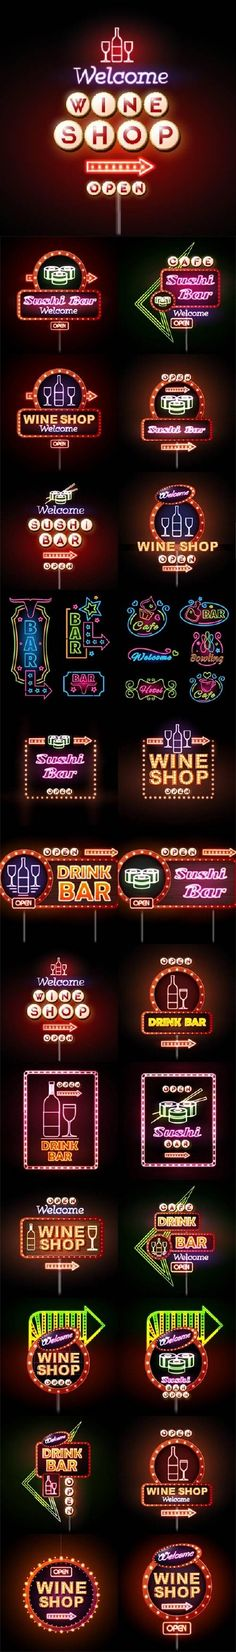 Neon advertising signs bar drink and sushi